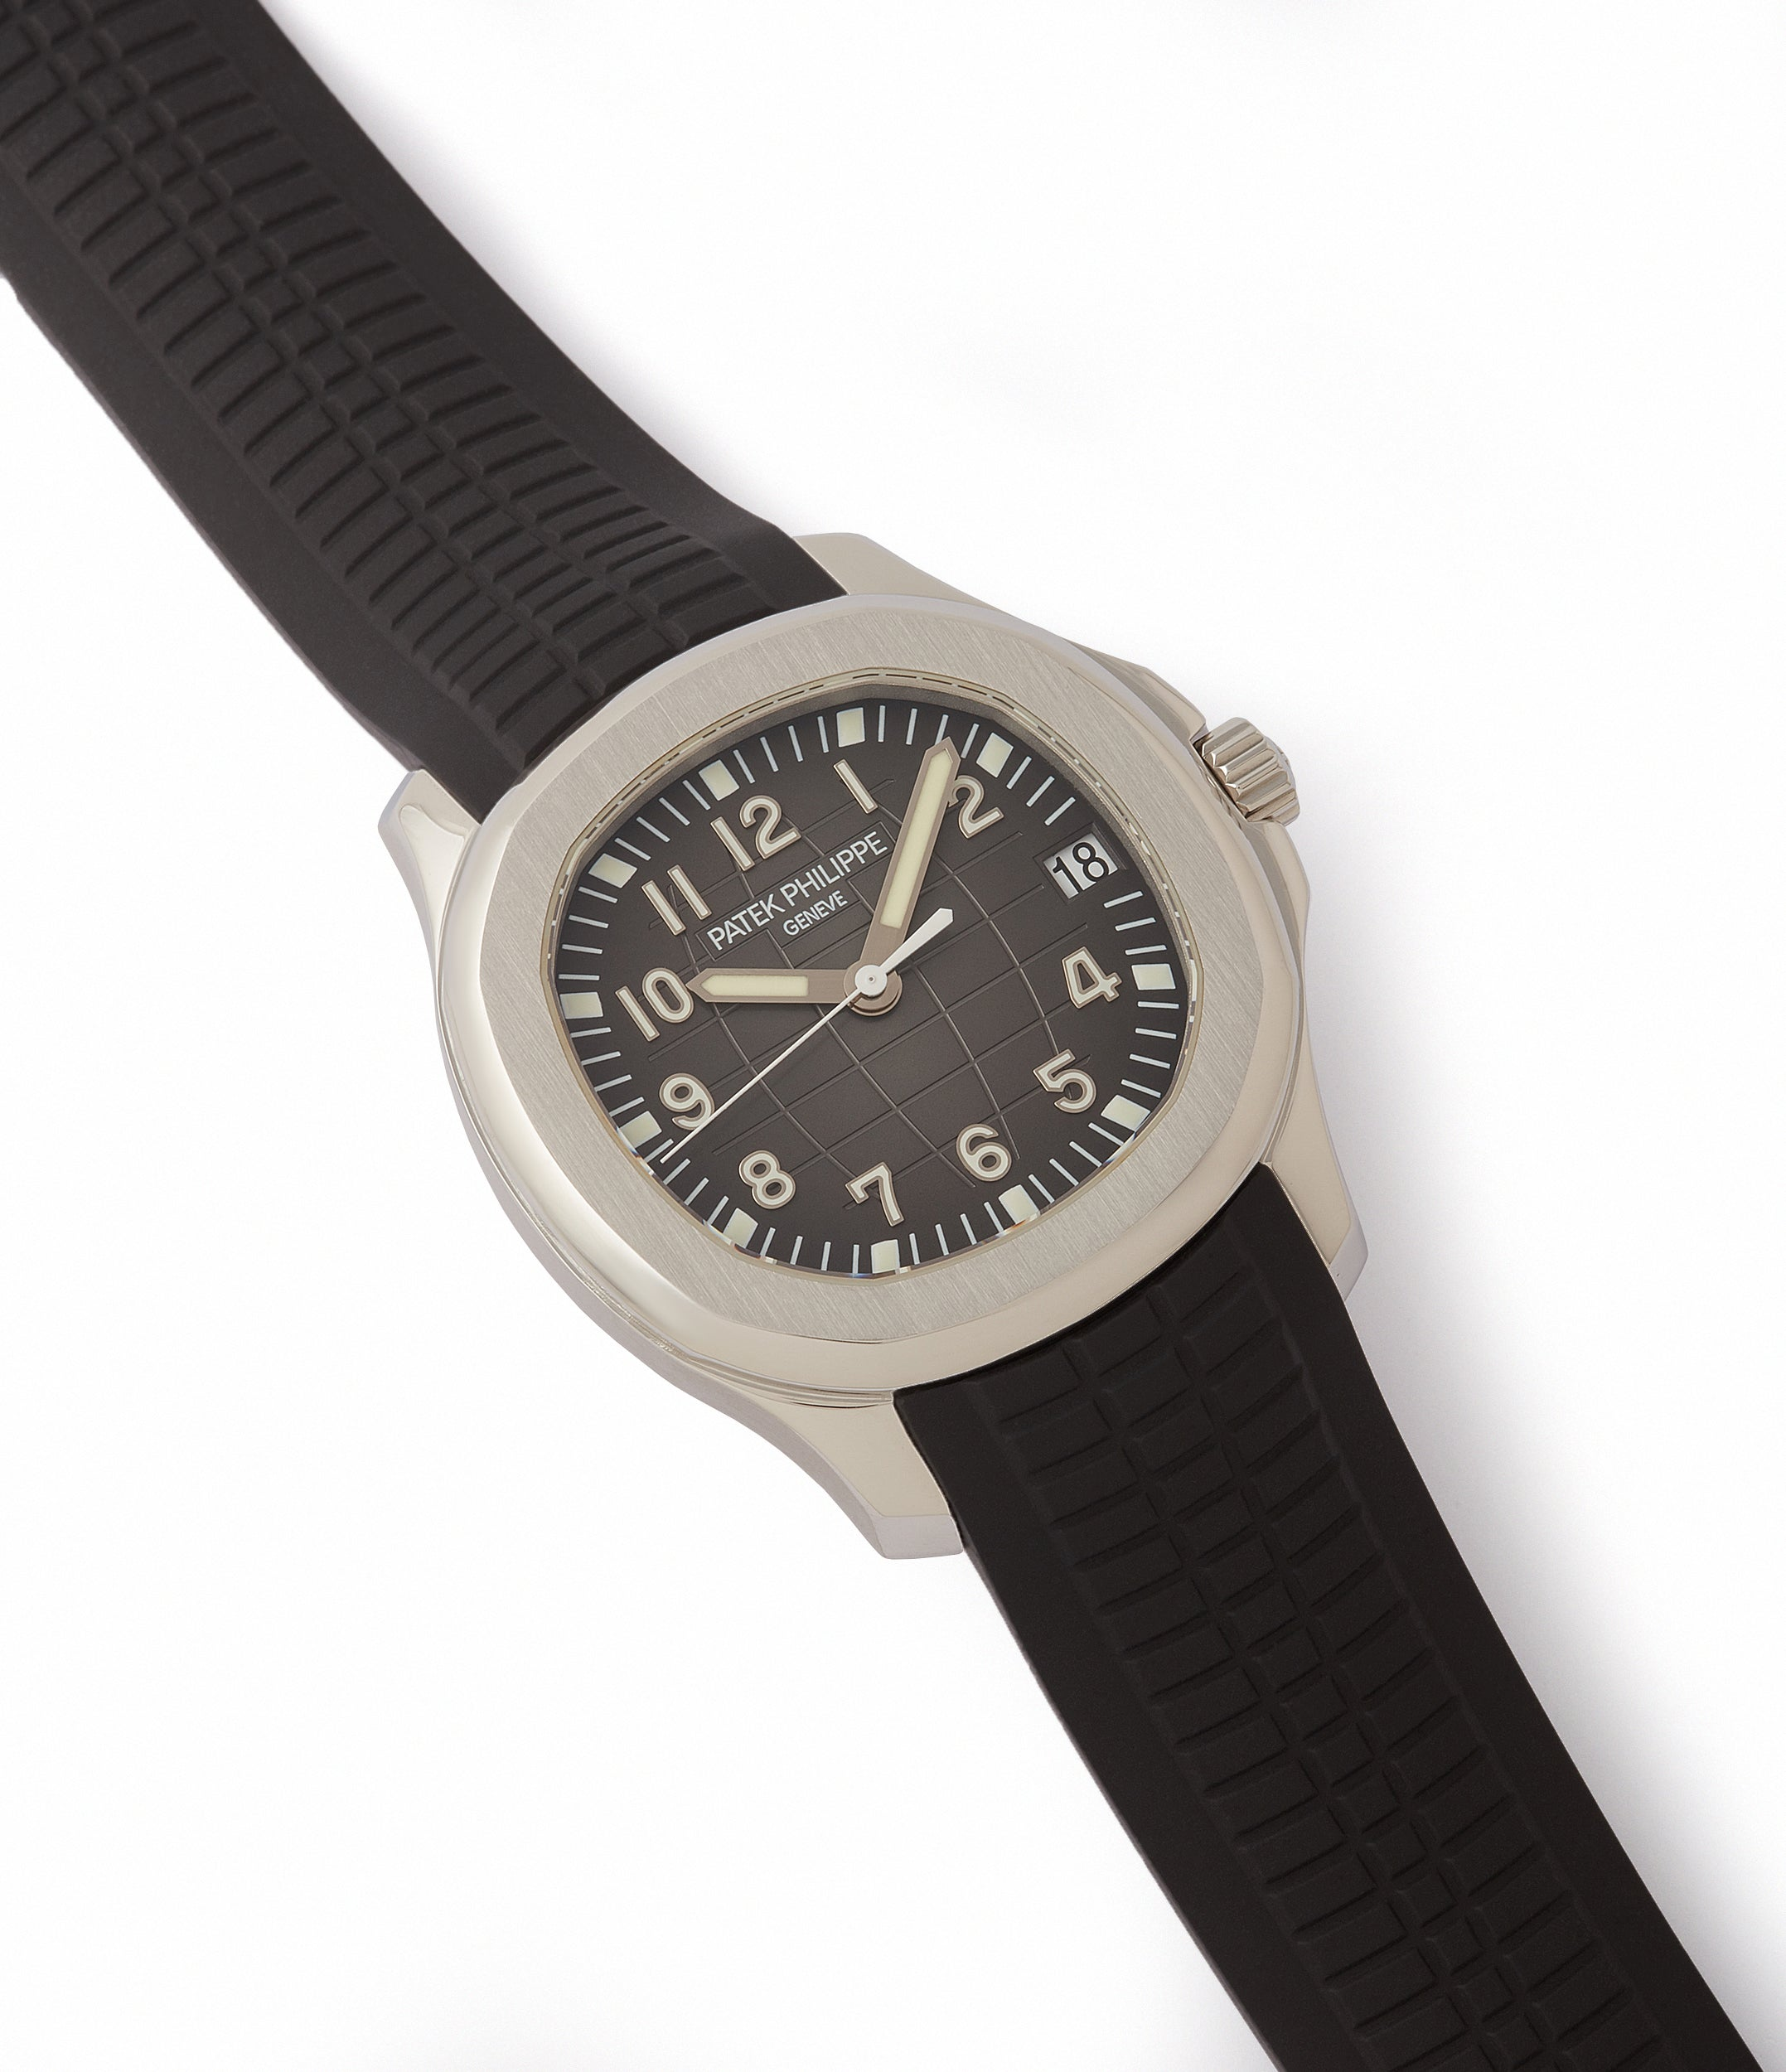 sell Patek Philippe Aquanaut 5165A-001 transitional steel sport watch for sale online at A Collected Man London UK specialist of rare watches